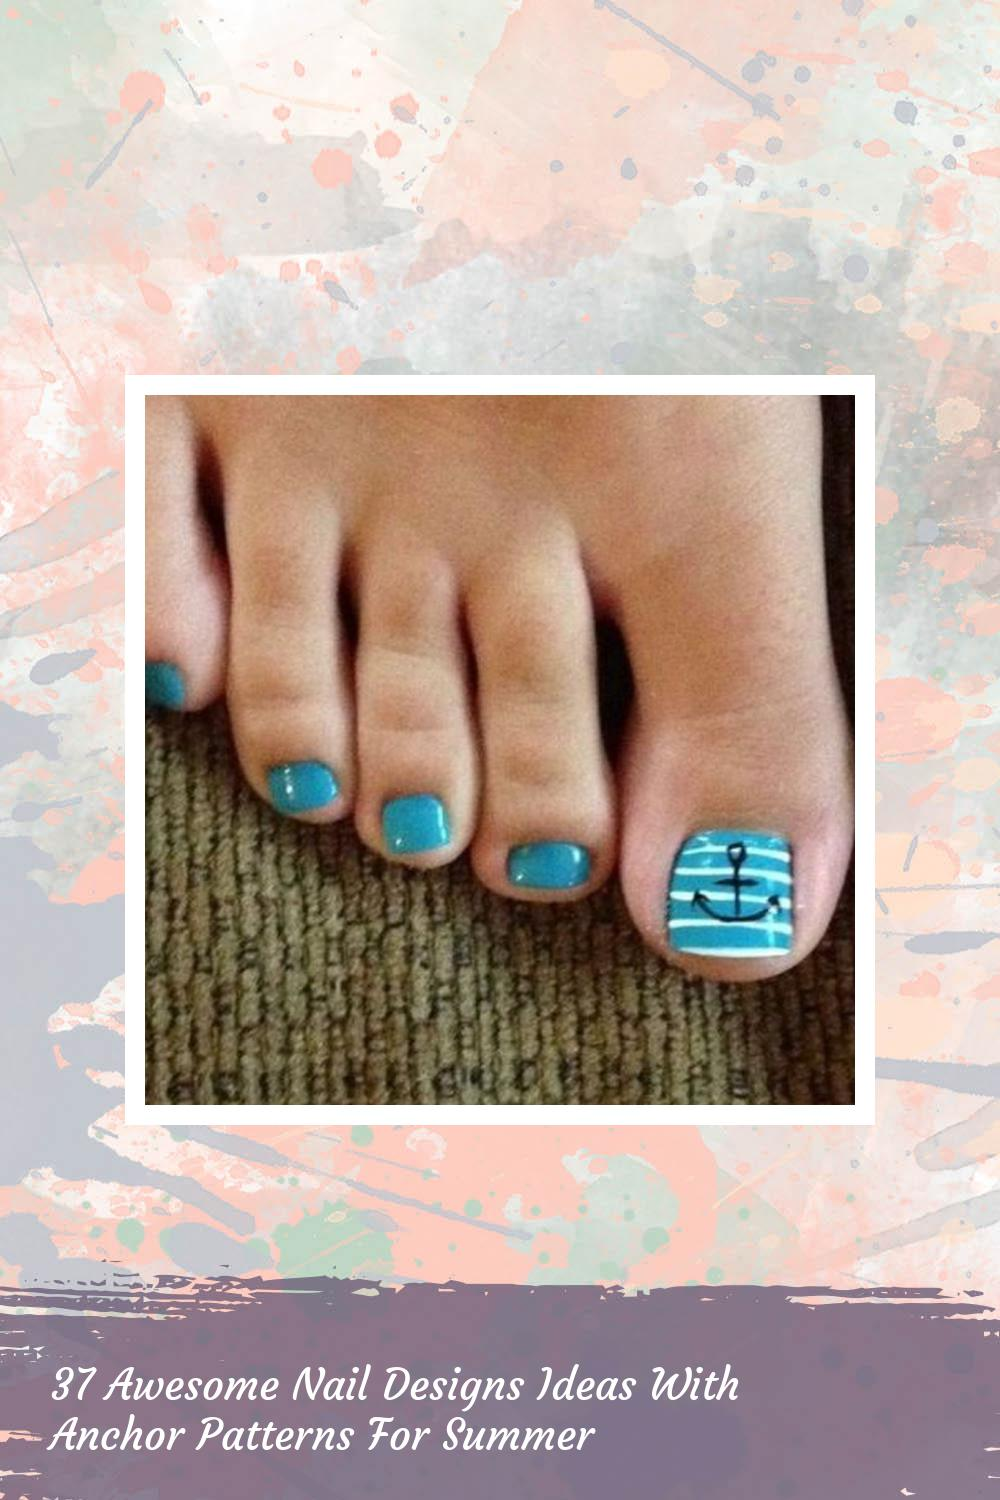 37 Awesome Nail Designs Ideas With Anchor Patterns For Summer 1